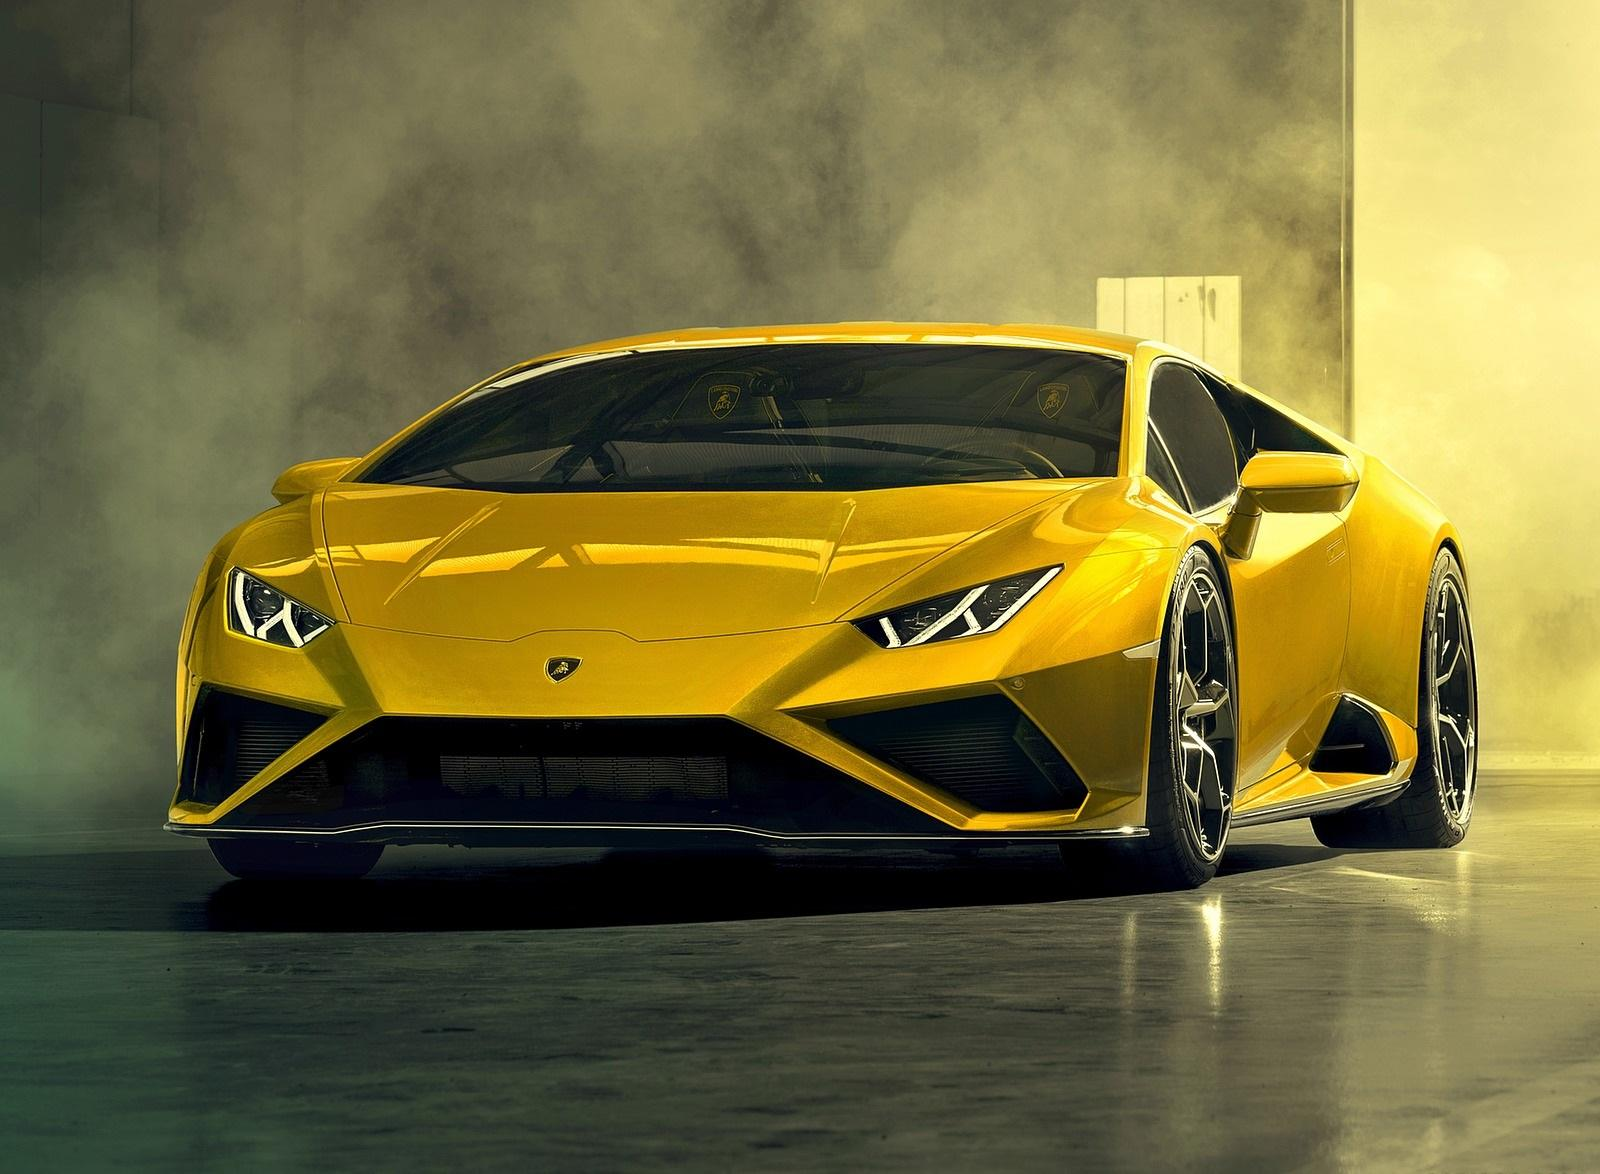 The 2021 Lamborghini Hurican